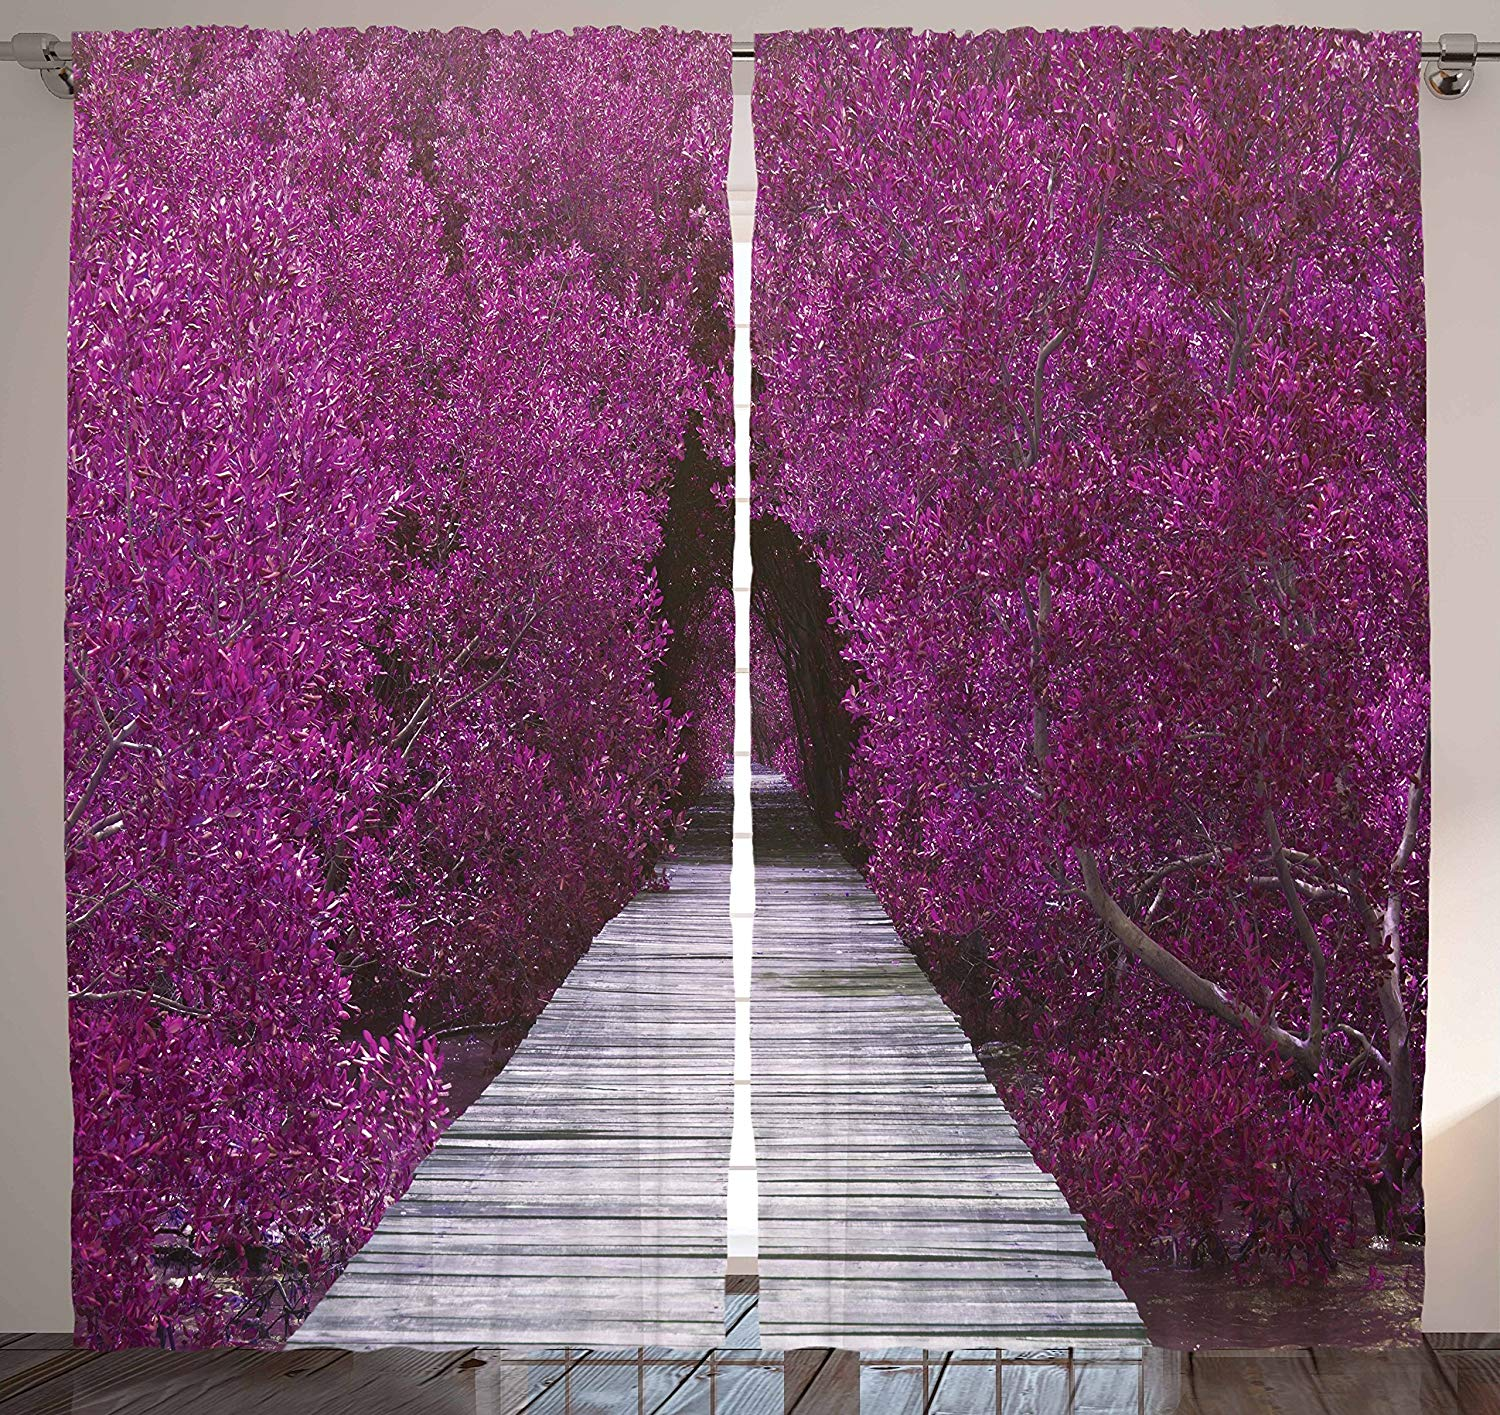 Eggplant Curtains Nature Landscape Purple Flower Trees Aisle Panoramic Prospective Theme View Print Bedroom Living Room Curtain Curtains Aliexpress